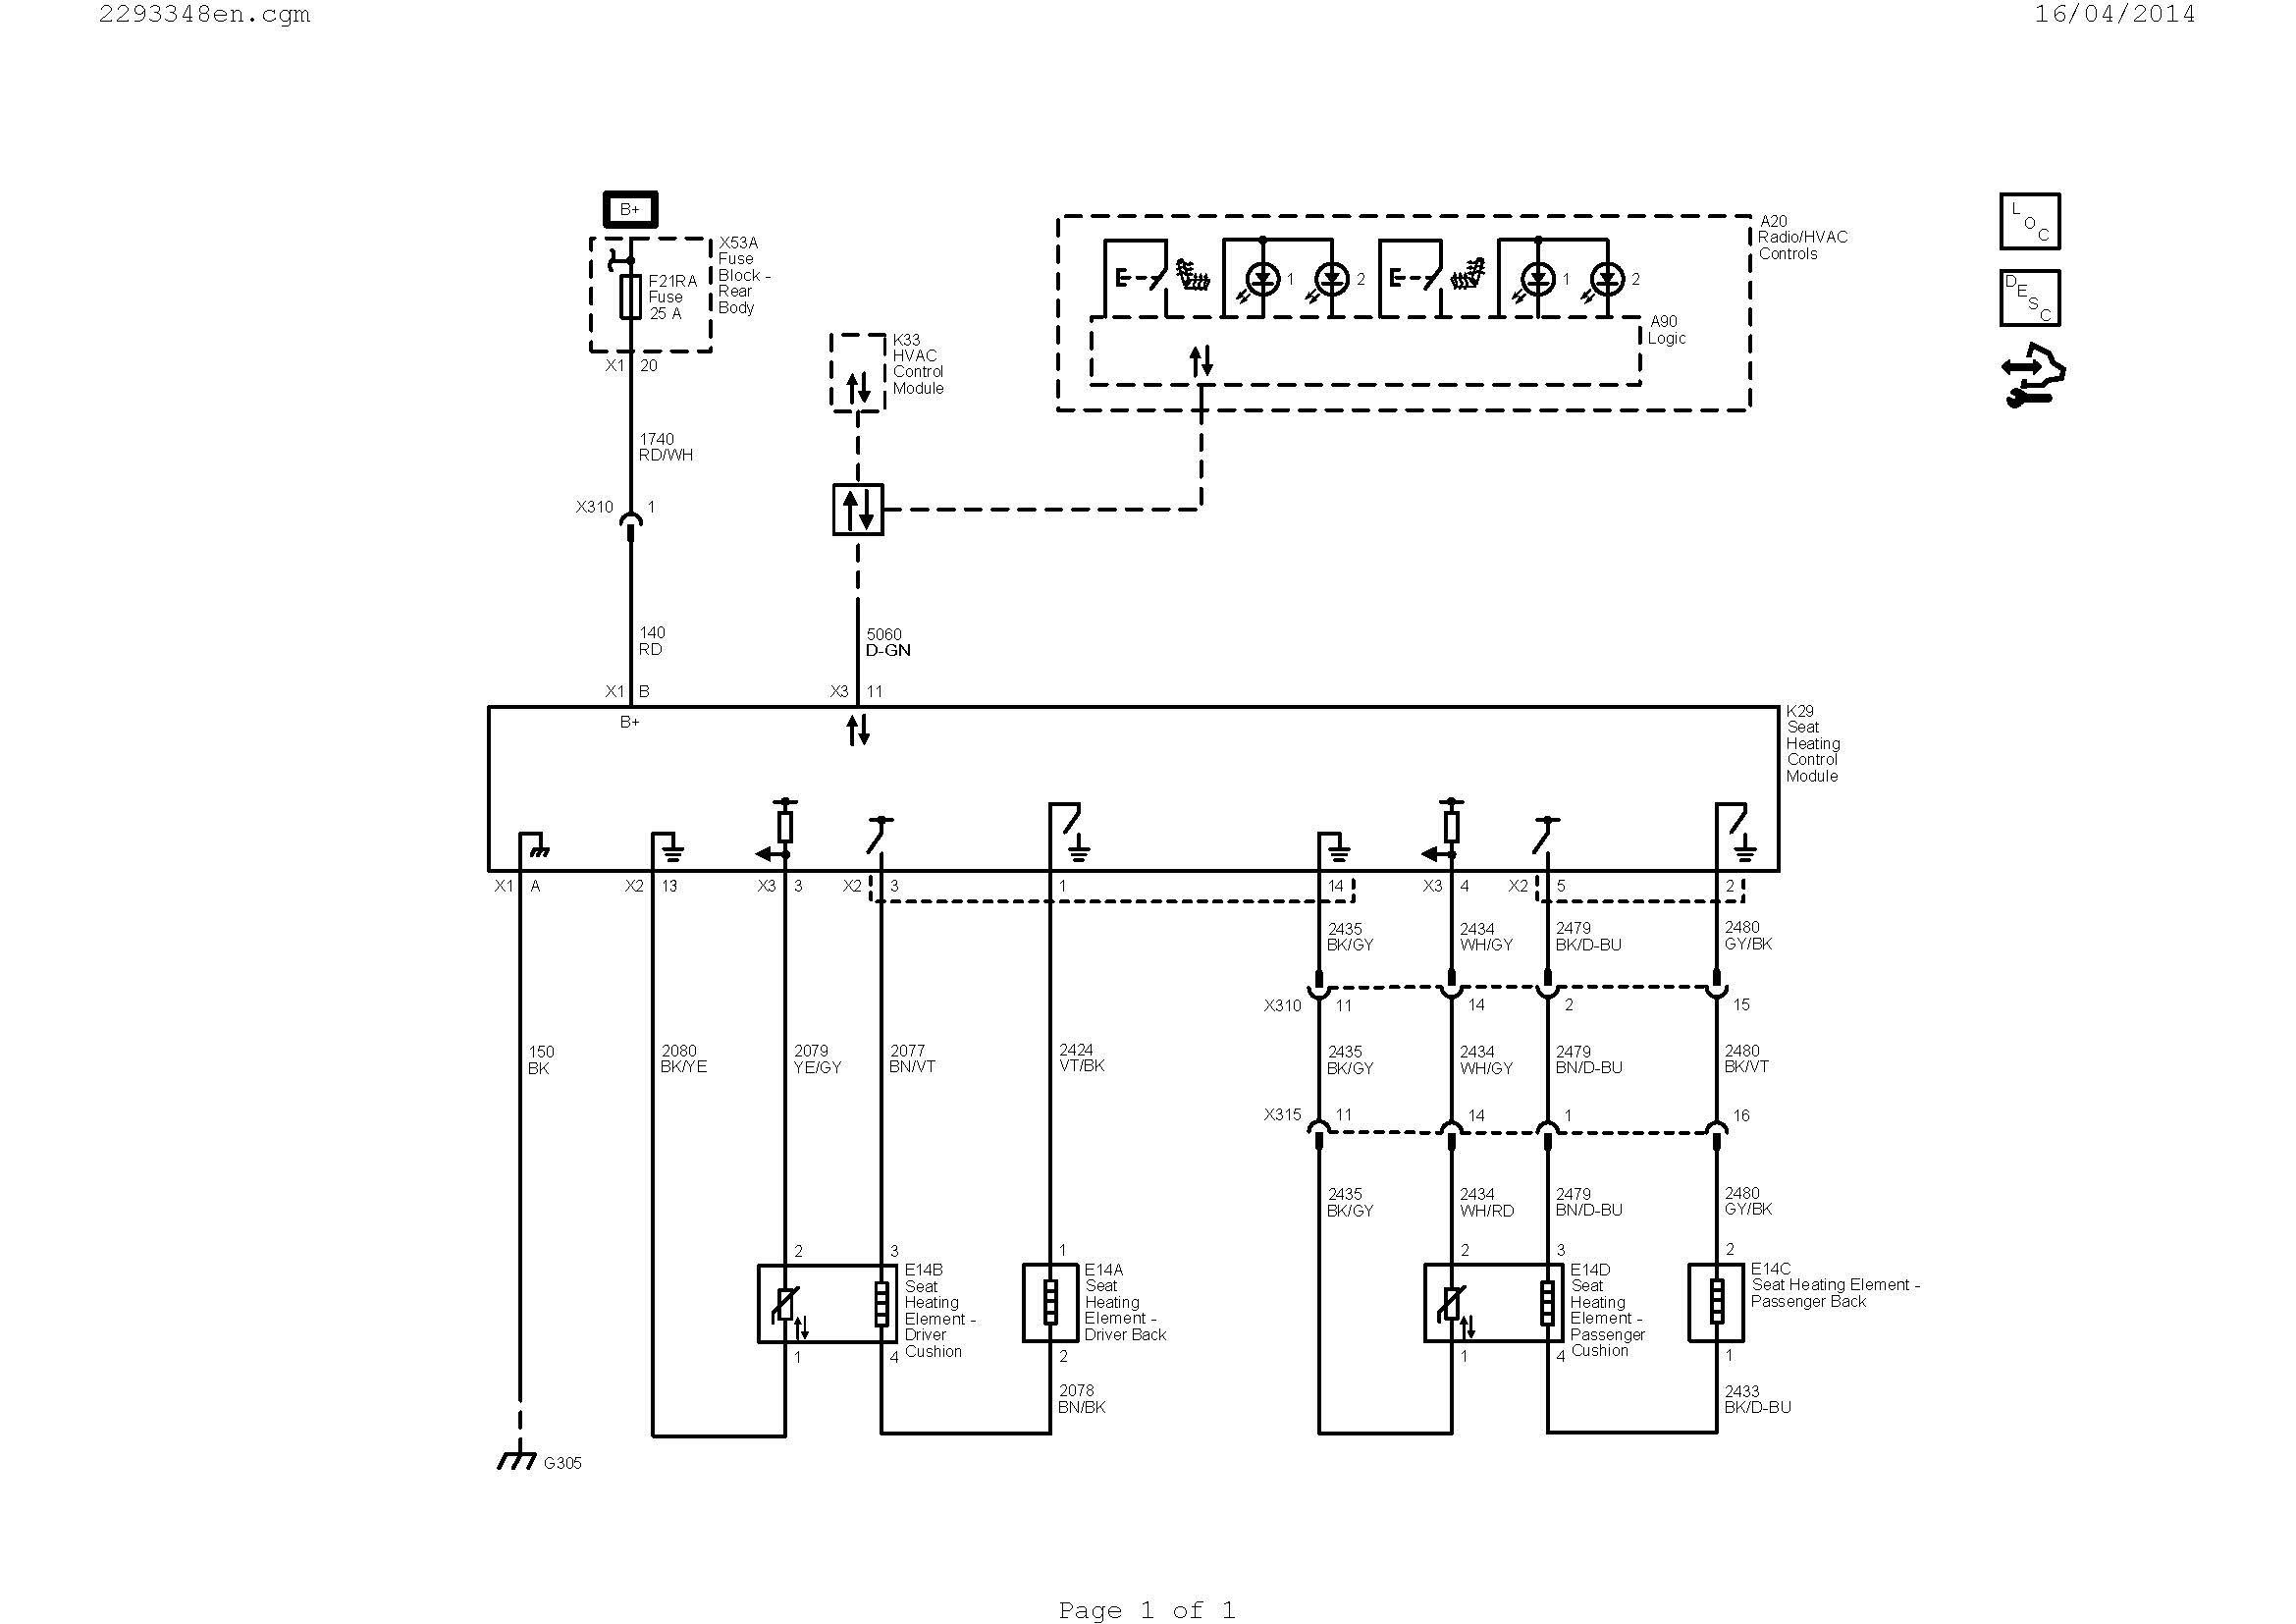 hobart h 600 wiring diagram Download-ac thermostat wiring diagram Collection Wiring A Ac thermostat Diagram New Wiring Diagram Ac Valid 5-r